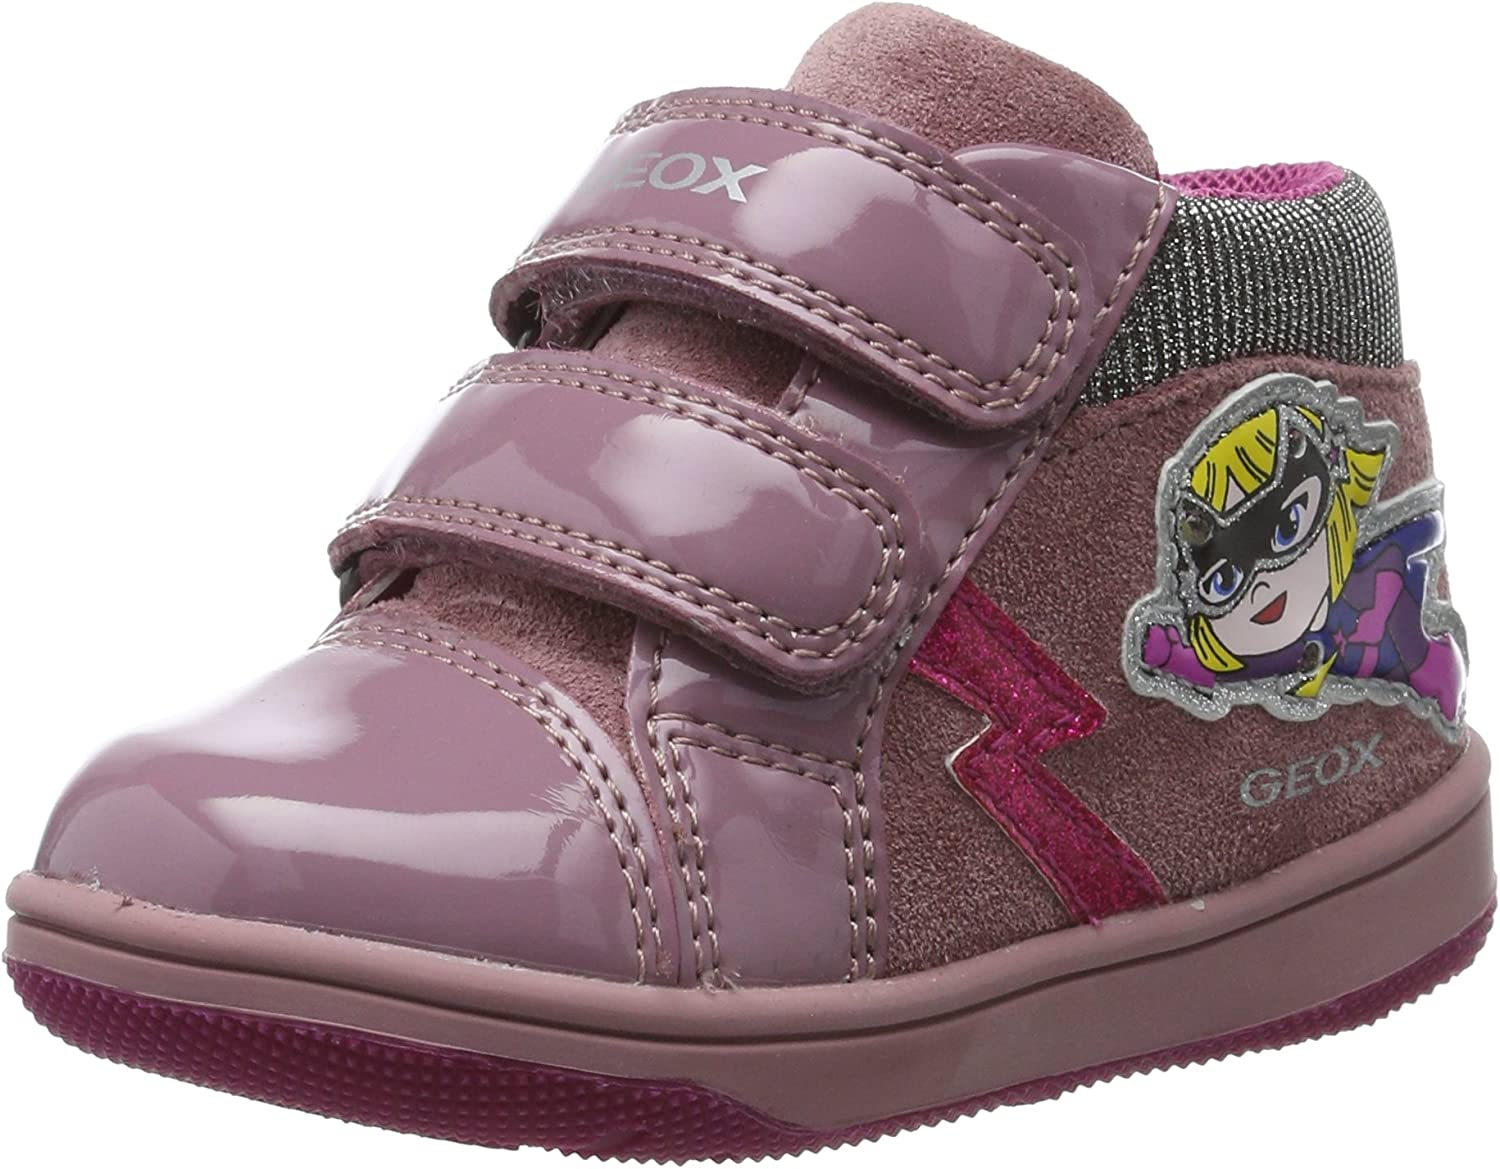 habla Supervivencia moneda  Geox Baby Girls B New Flick E Sneaker, Pink Dk Pink, 3.5 UK Child:  Amazon.co.uk: Shoes & Bags